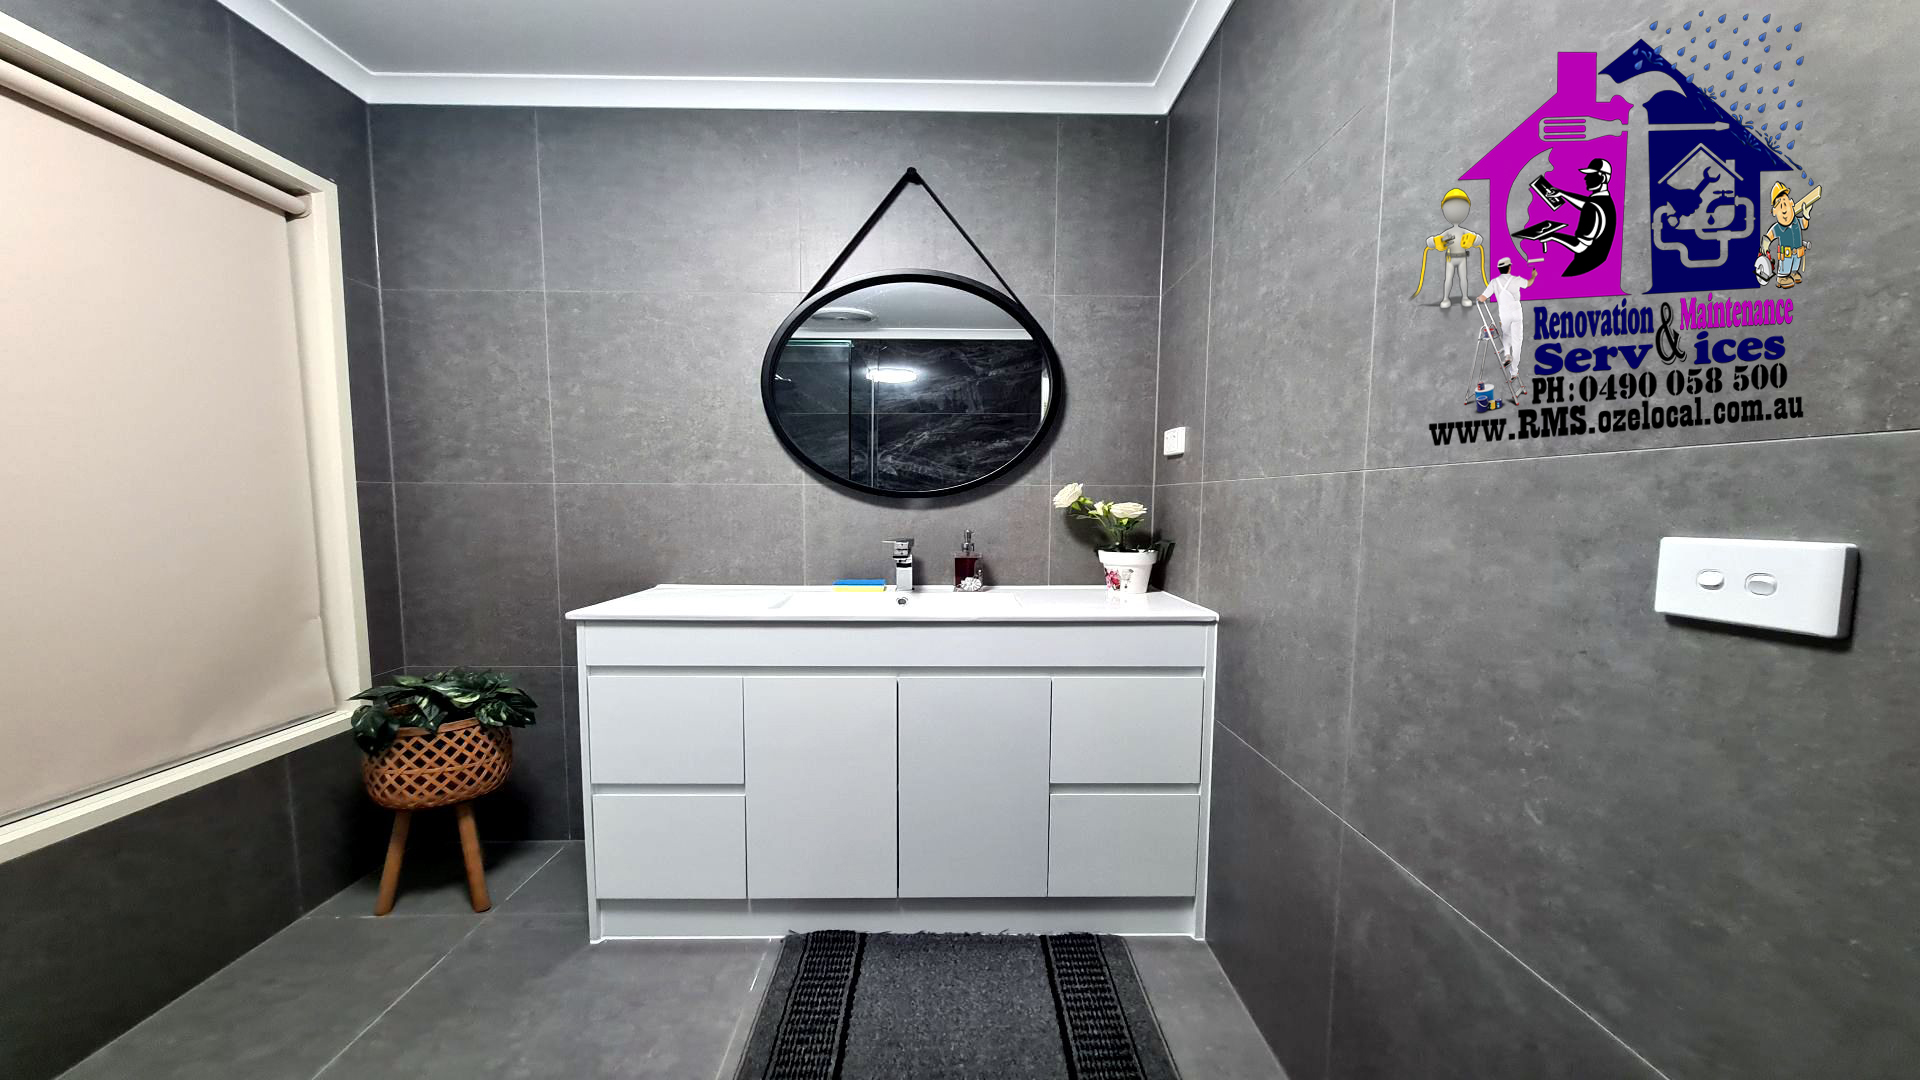 Tiling Services Melbourne - Reliable Tiler Available